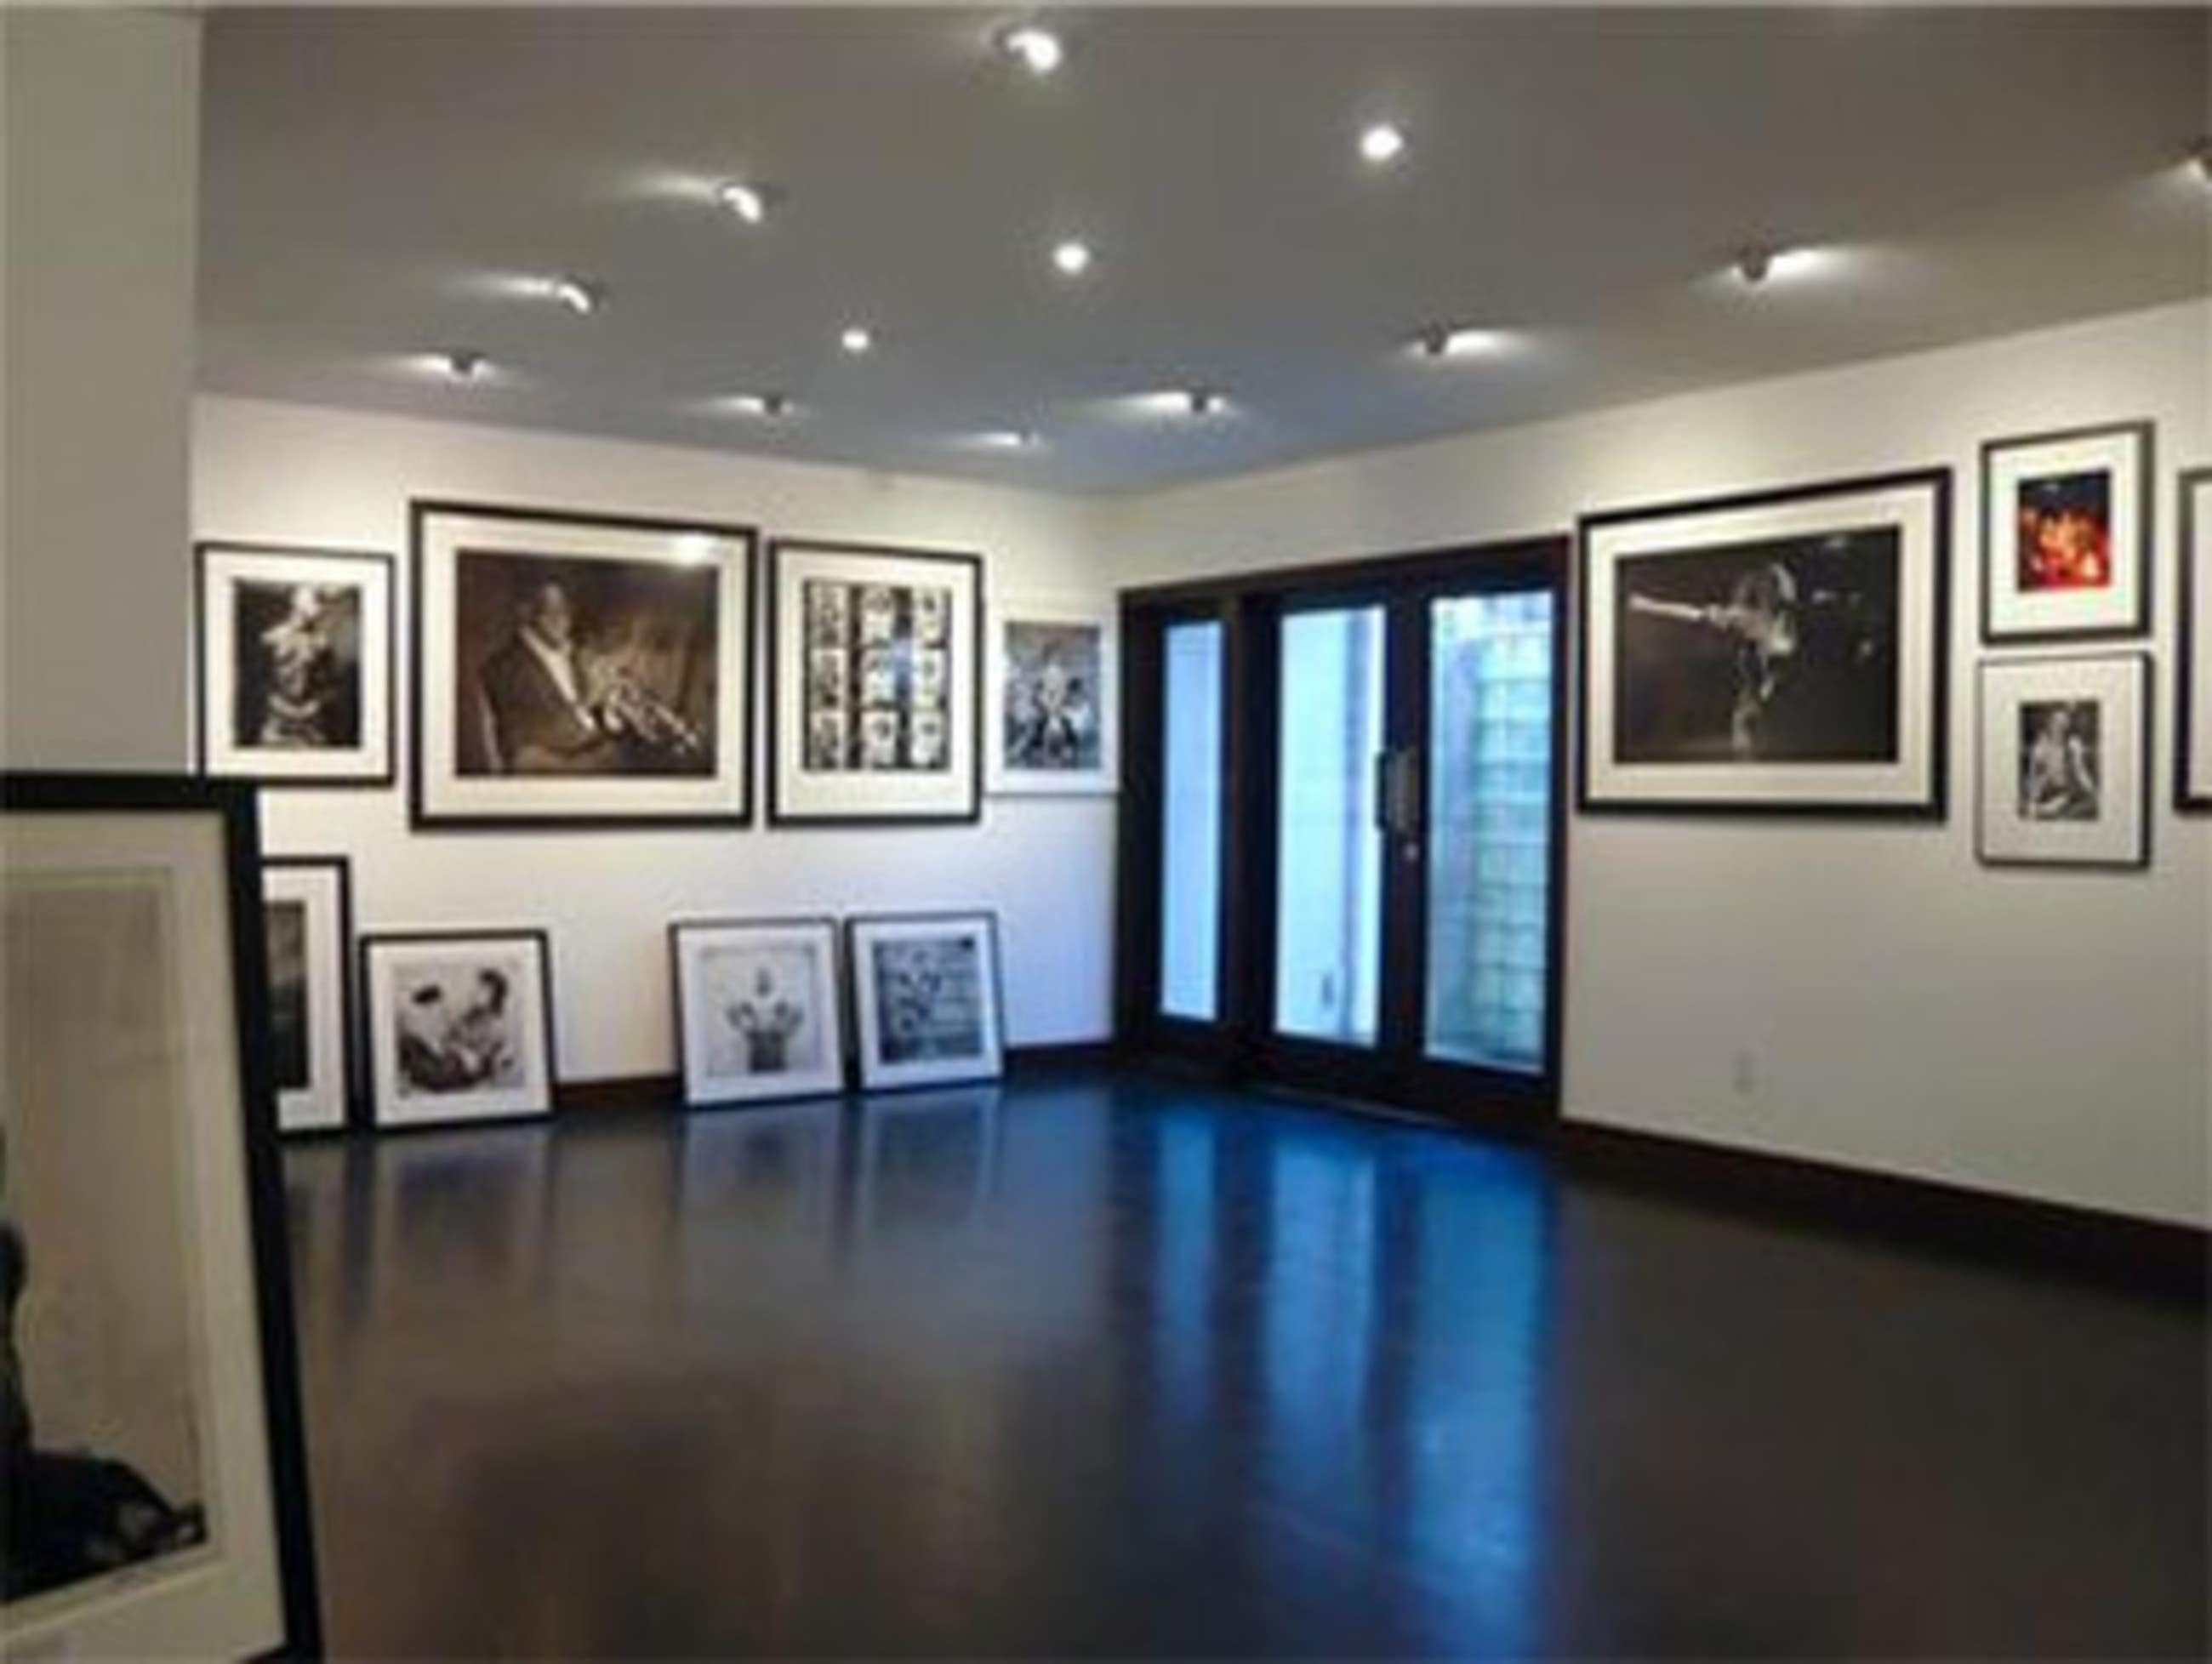 Morrison Hotel Gallery at Sunset Marquis